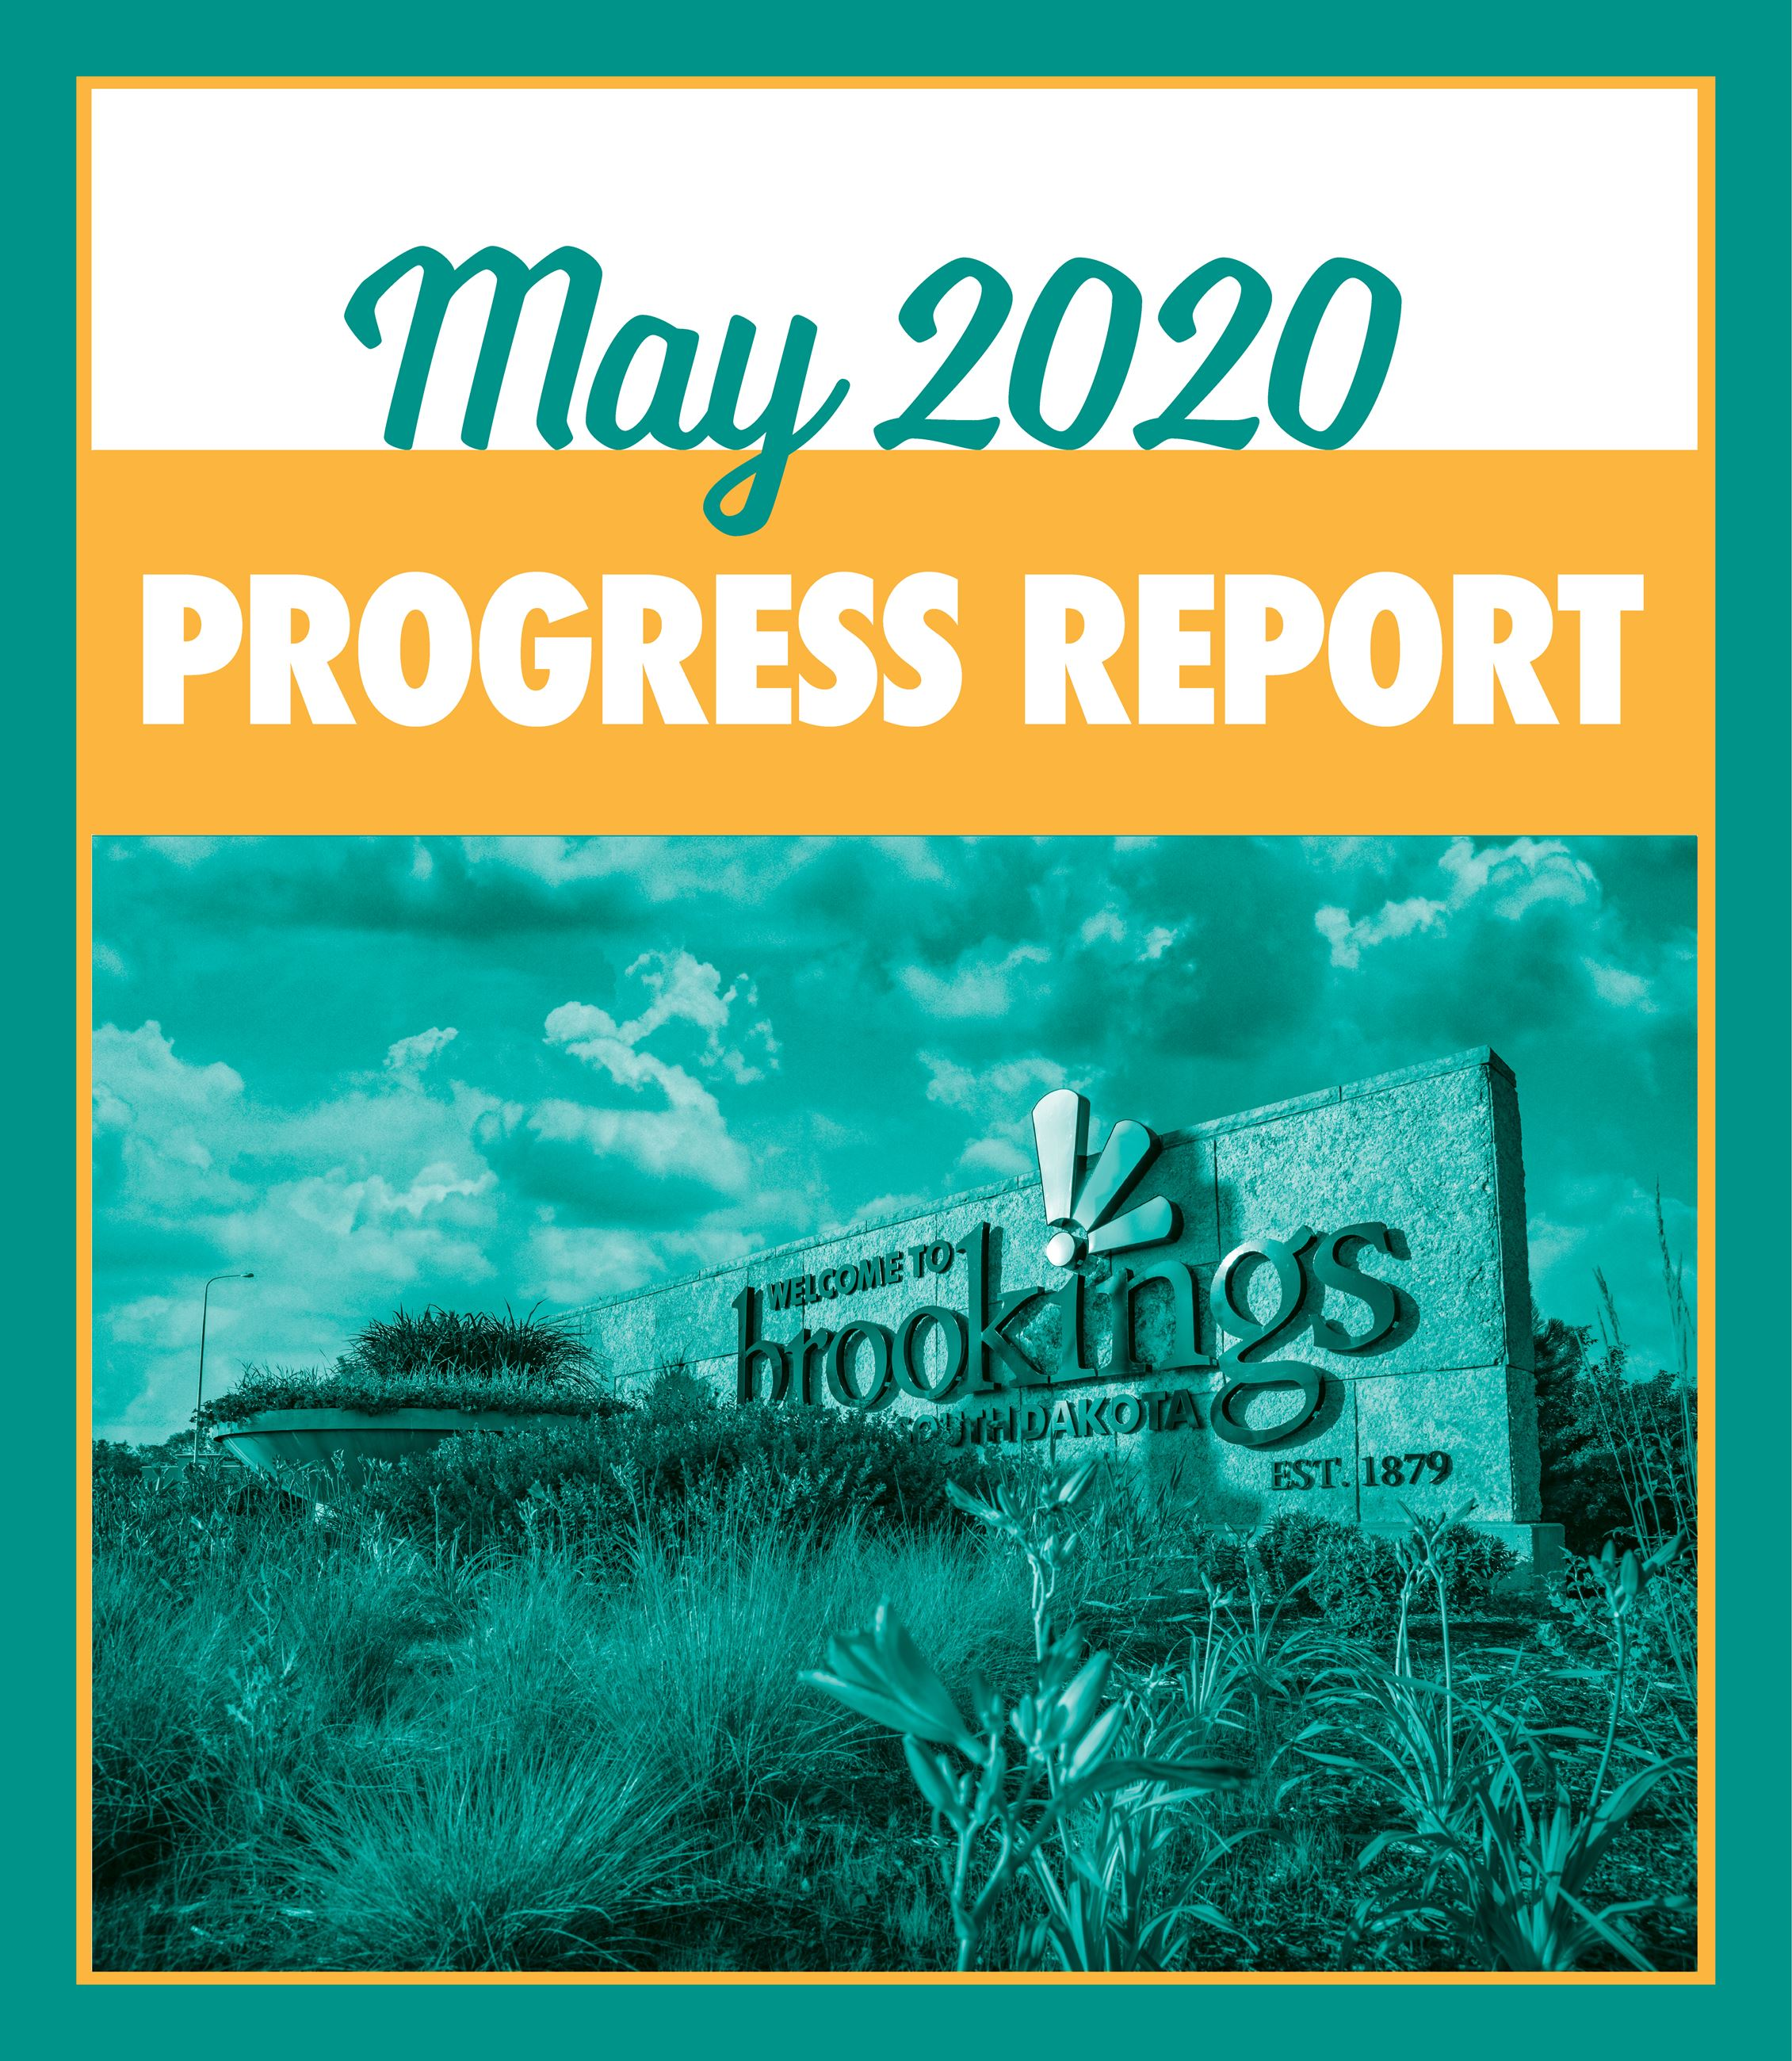 Picture of Brookings Sign with text that reads - May 2020 Progress Report